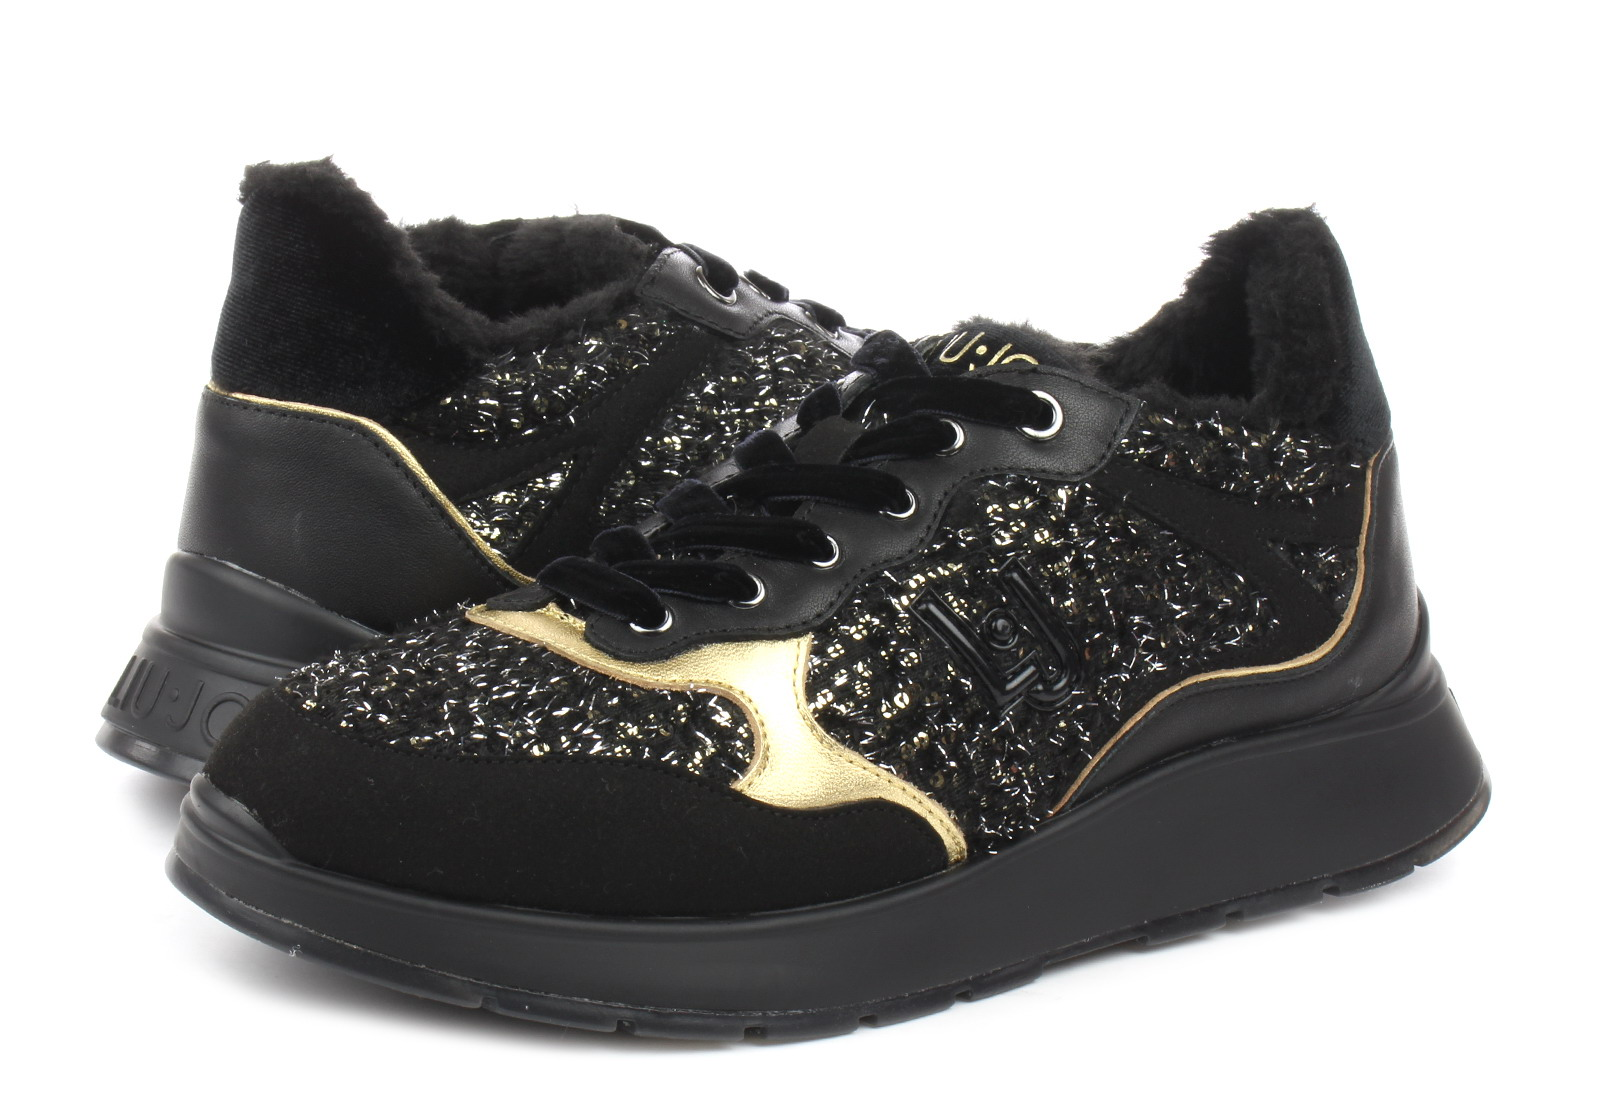 sports shoes f18d6 d0204 Liu Jo Shoes - Asia sneaker - B69009TX049-BLK - Online shop for sneakers,  shoes and boots